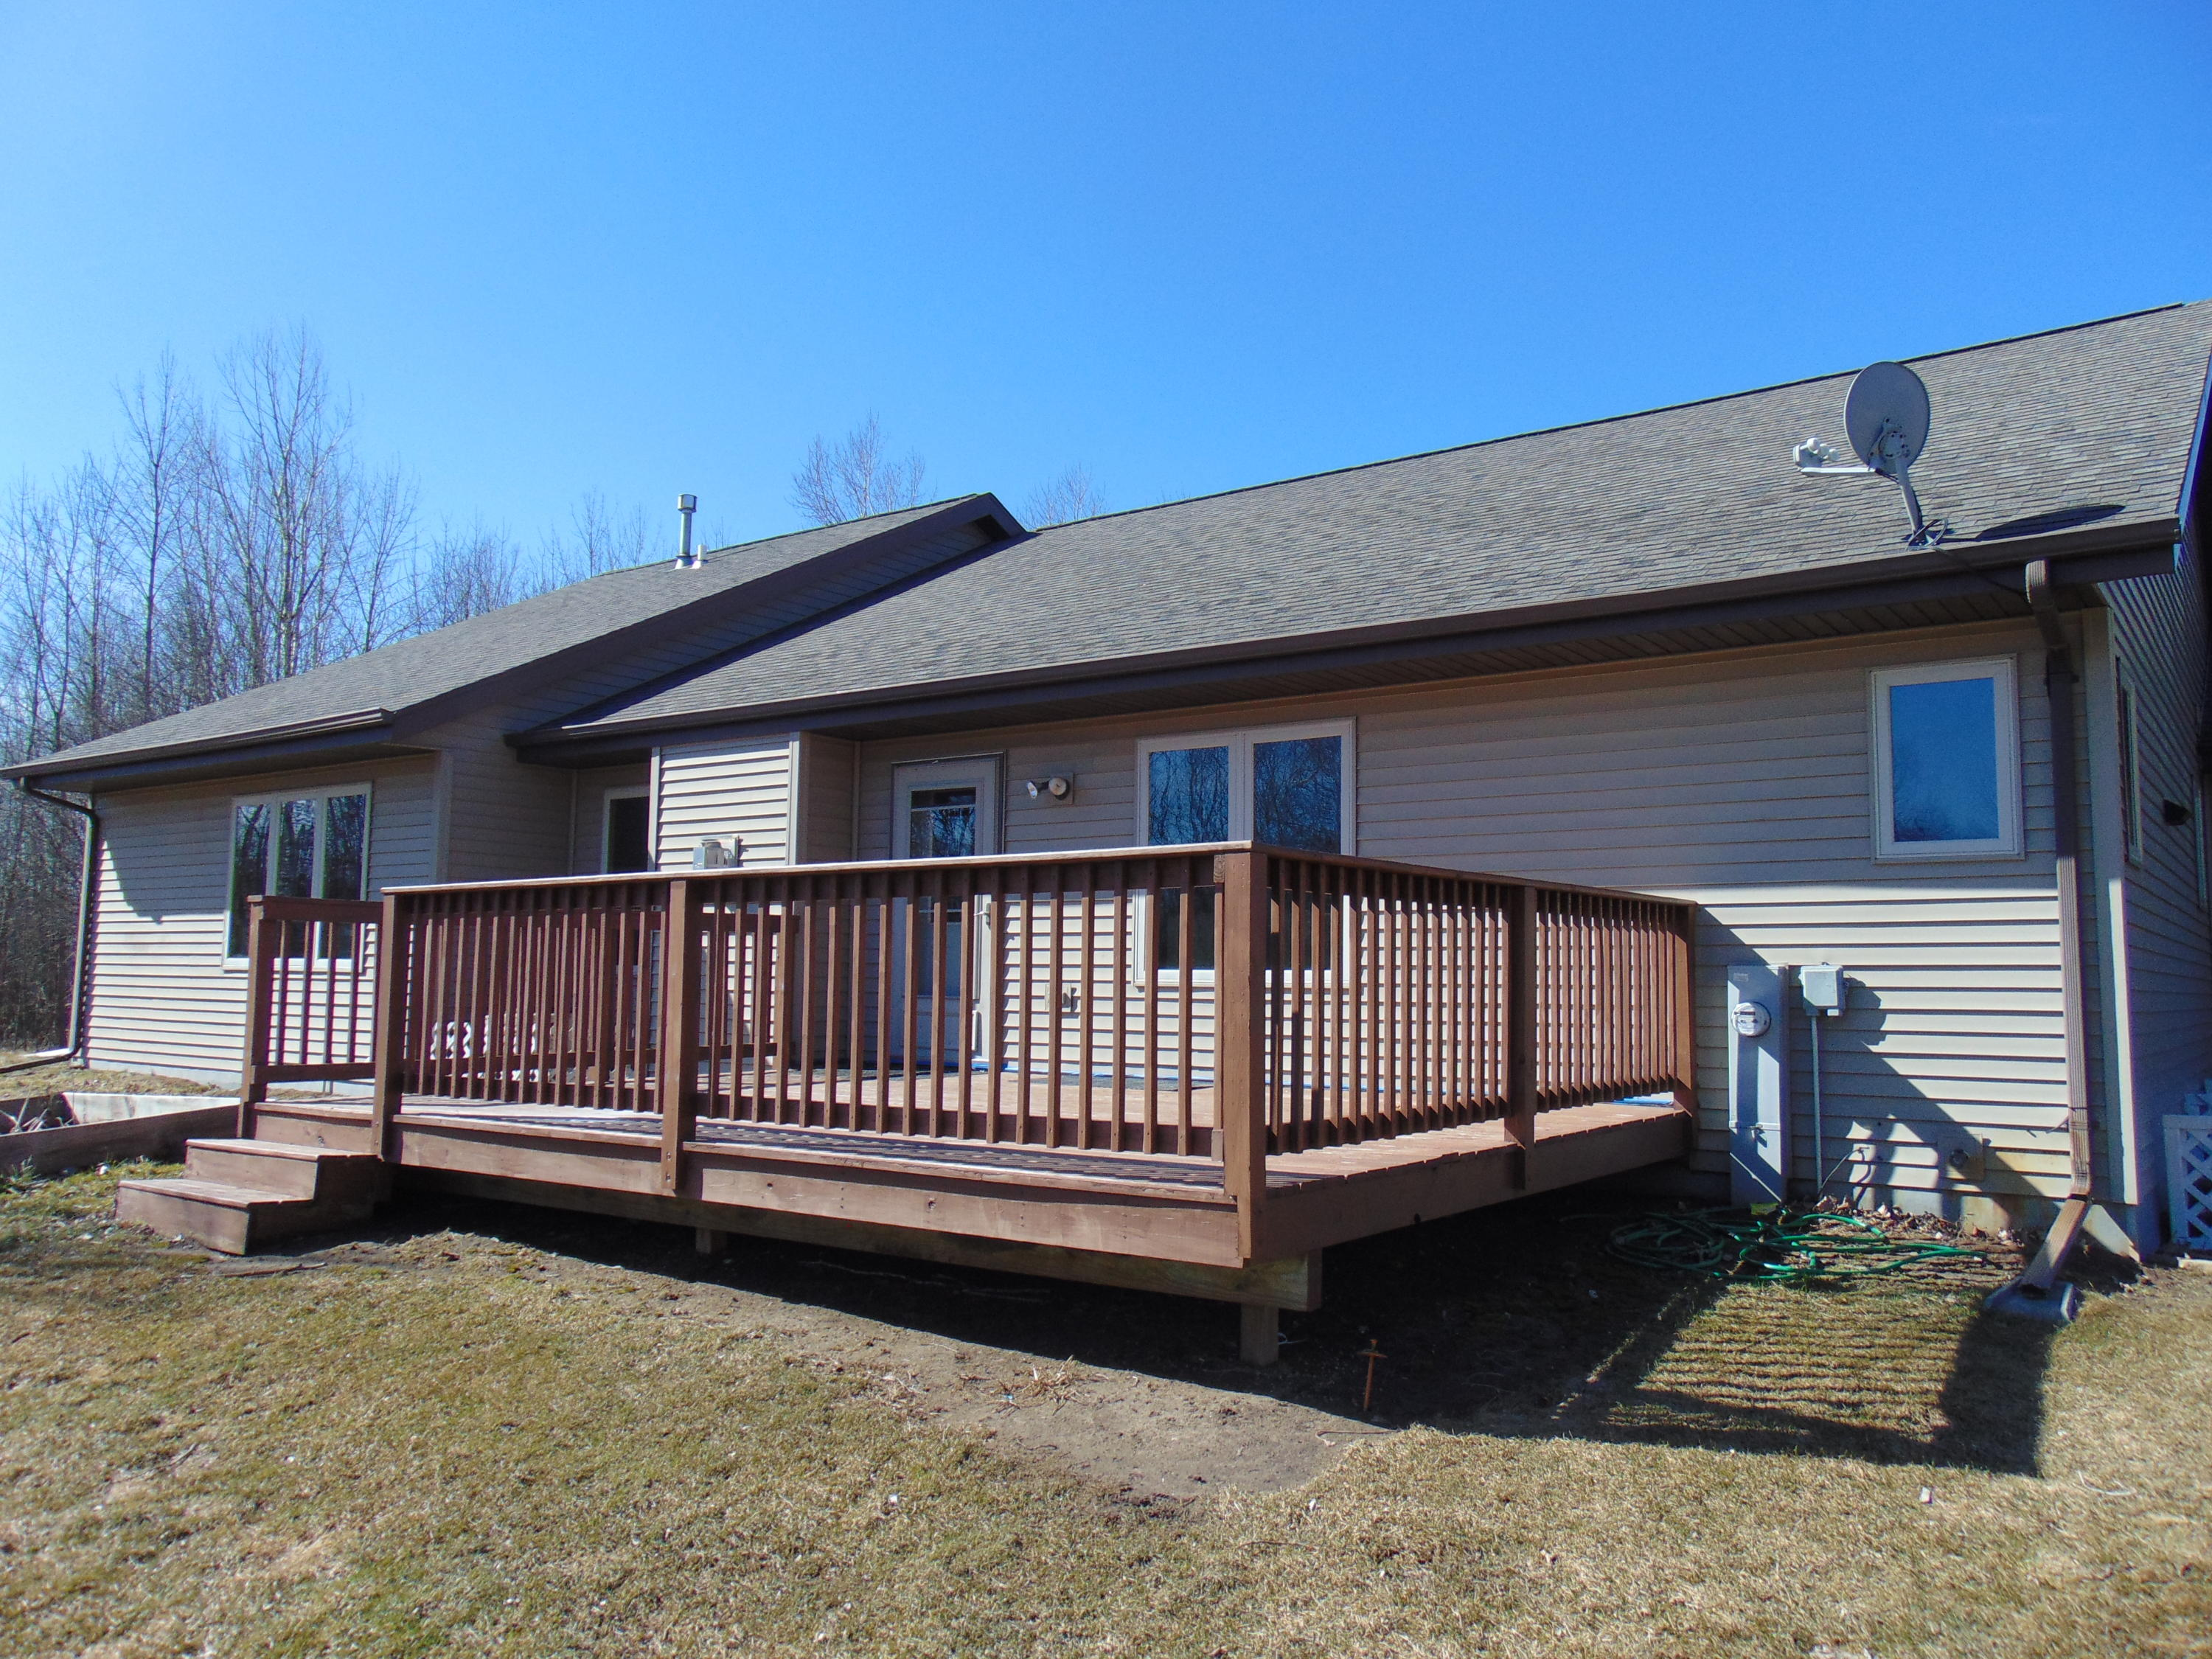 Rear of Home and Deck